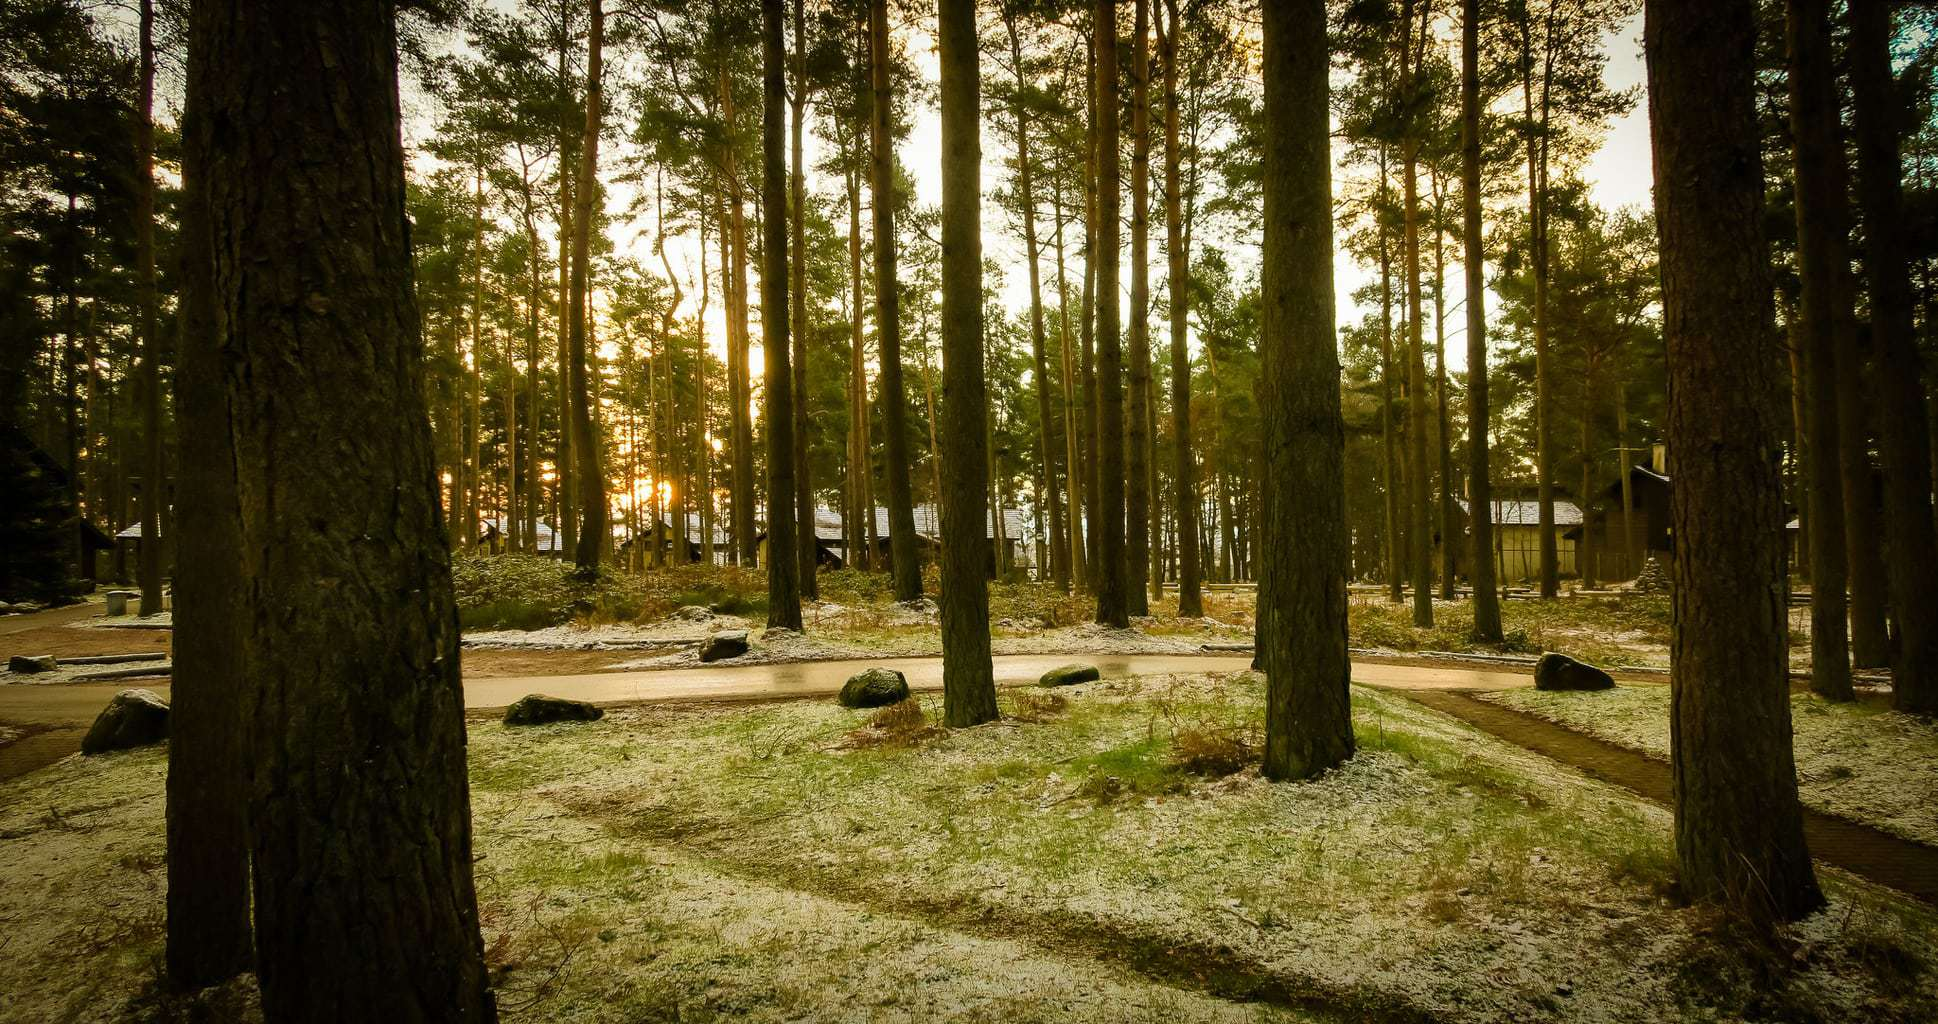 Which month is the best month to go to Center Parcs? www.minitravellers.co.uk